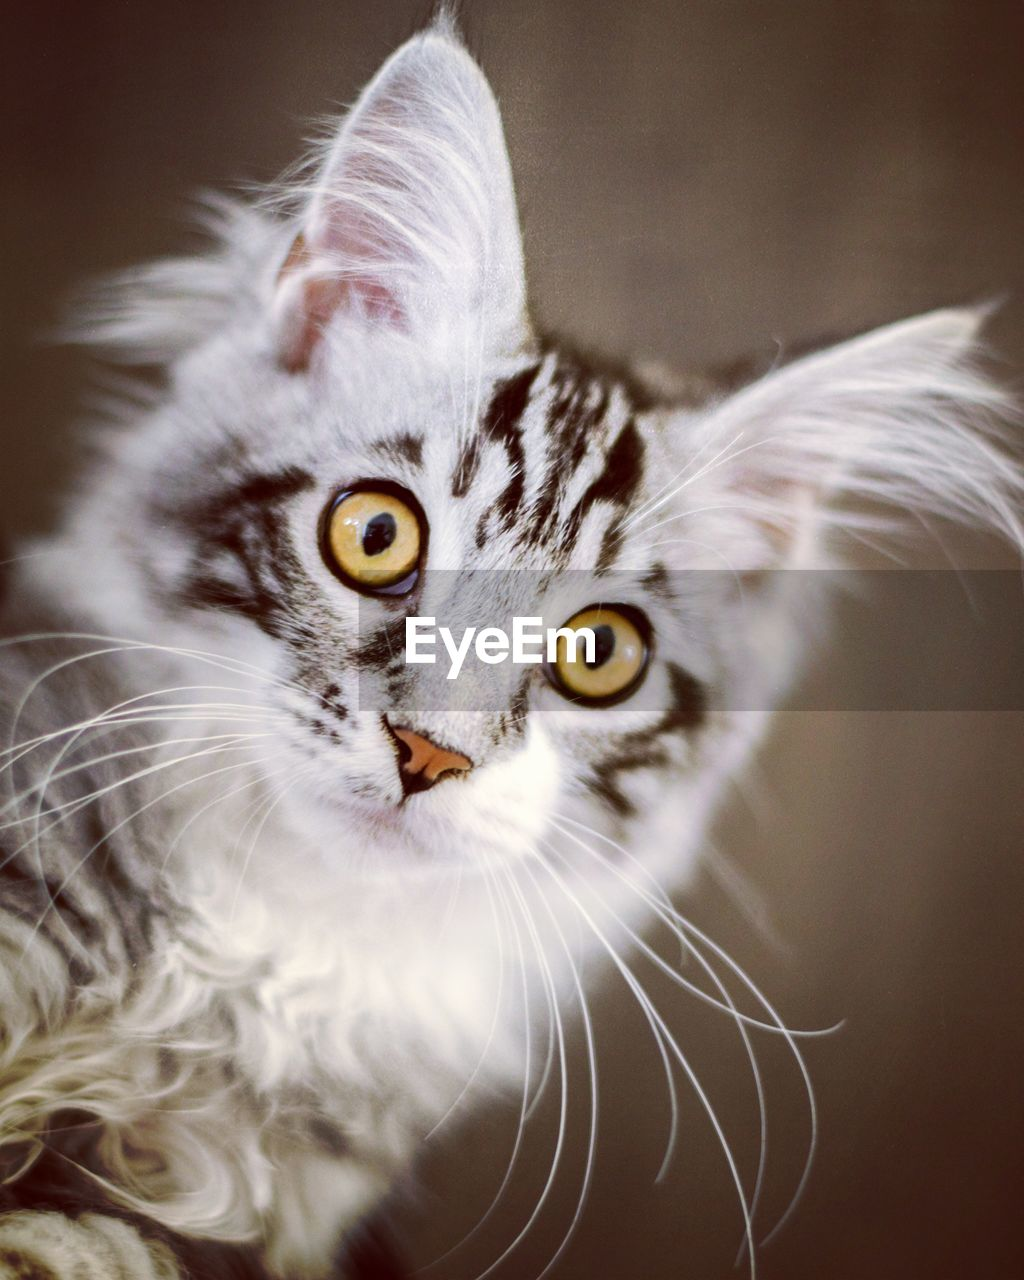 cat, feline, looking at camera, animal themes, animal, domestic cat, portrait, pets, one animal, domestic animals, domestic, mammal, vertebrate, whisker, no people, close-up, indoors, animal body part, selective focus, focus on foreground, animal head, yellow eyes, animal eye